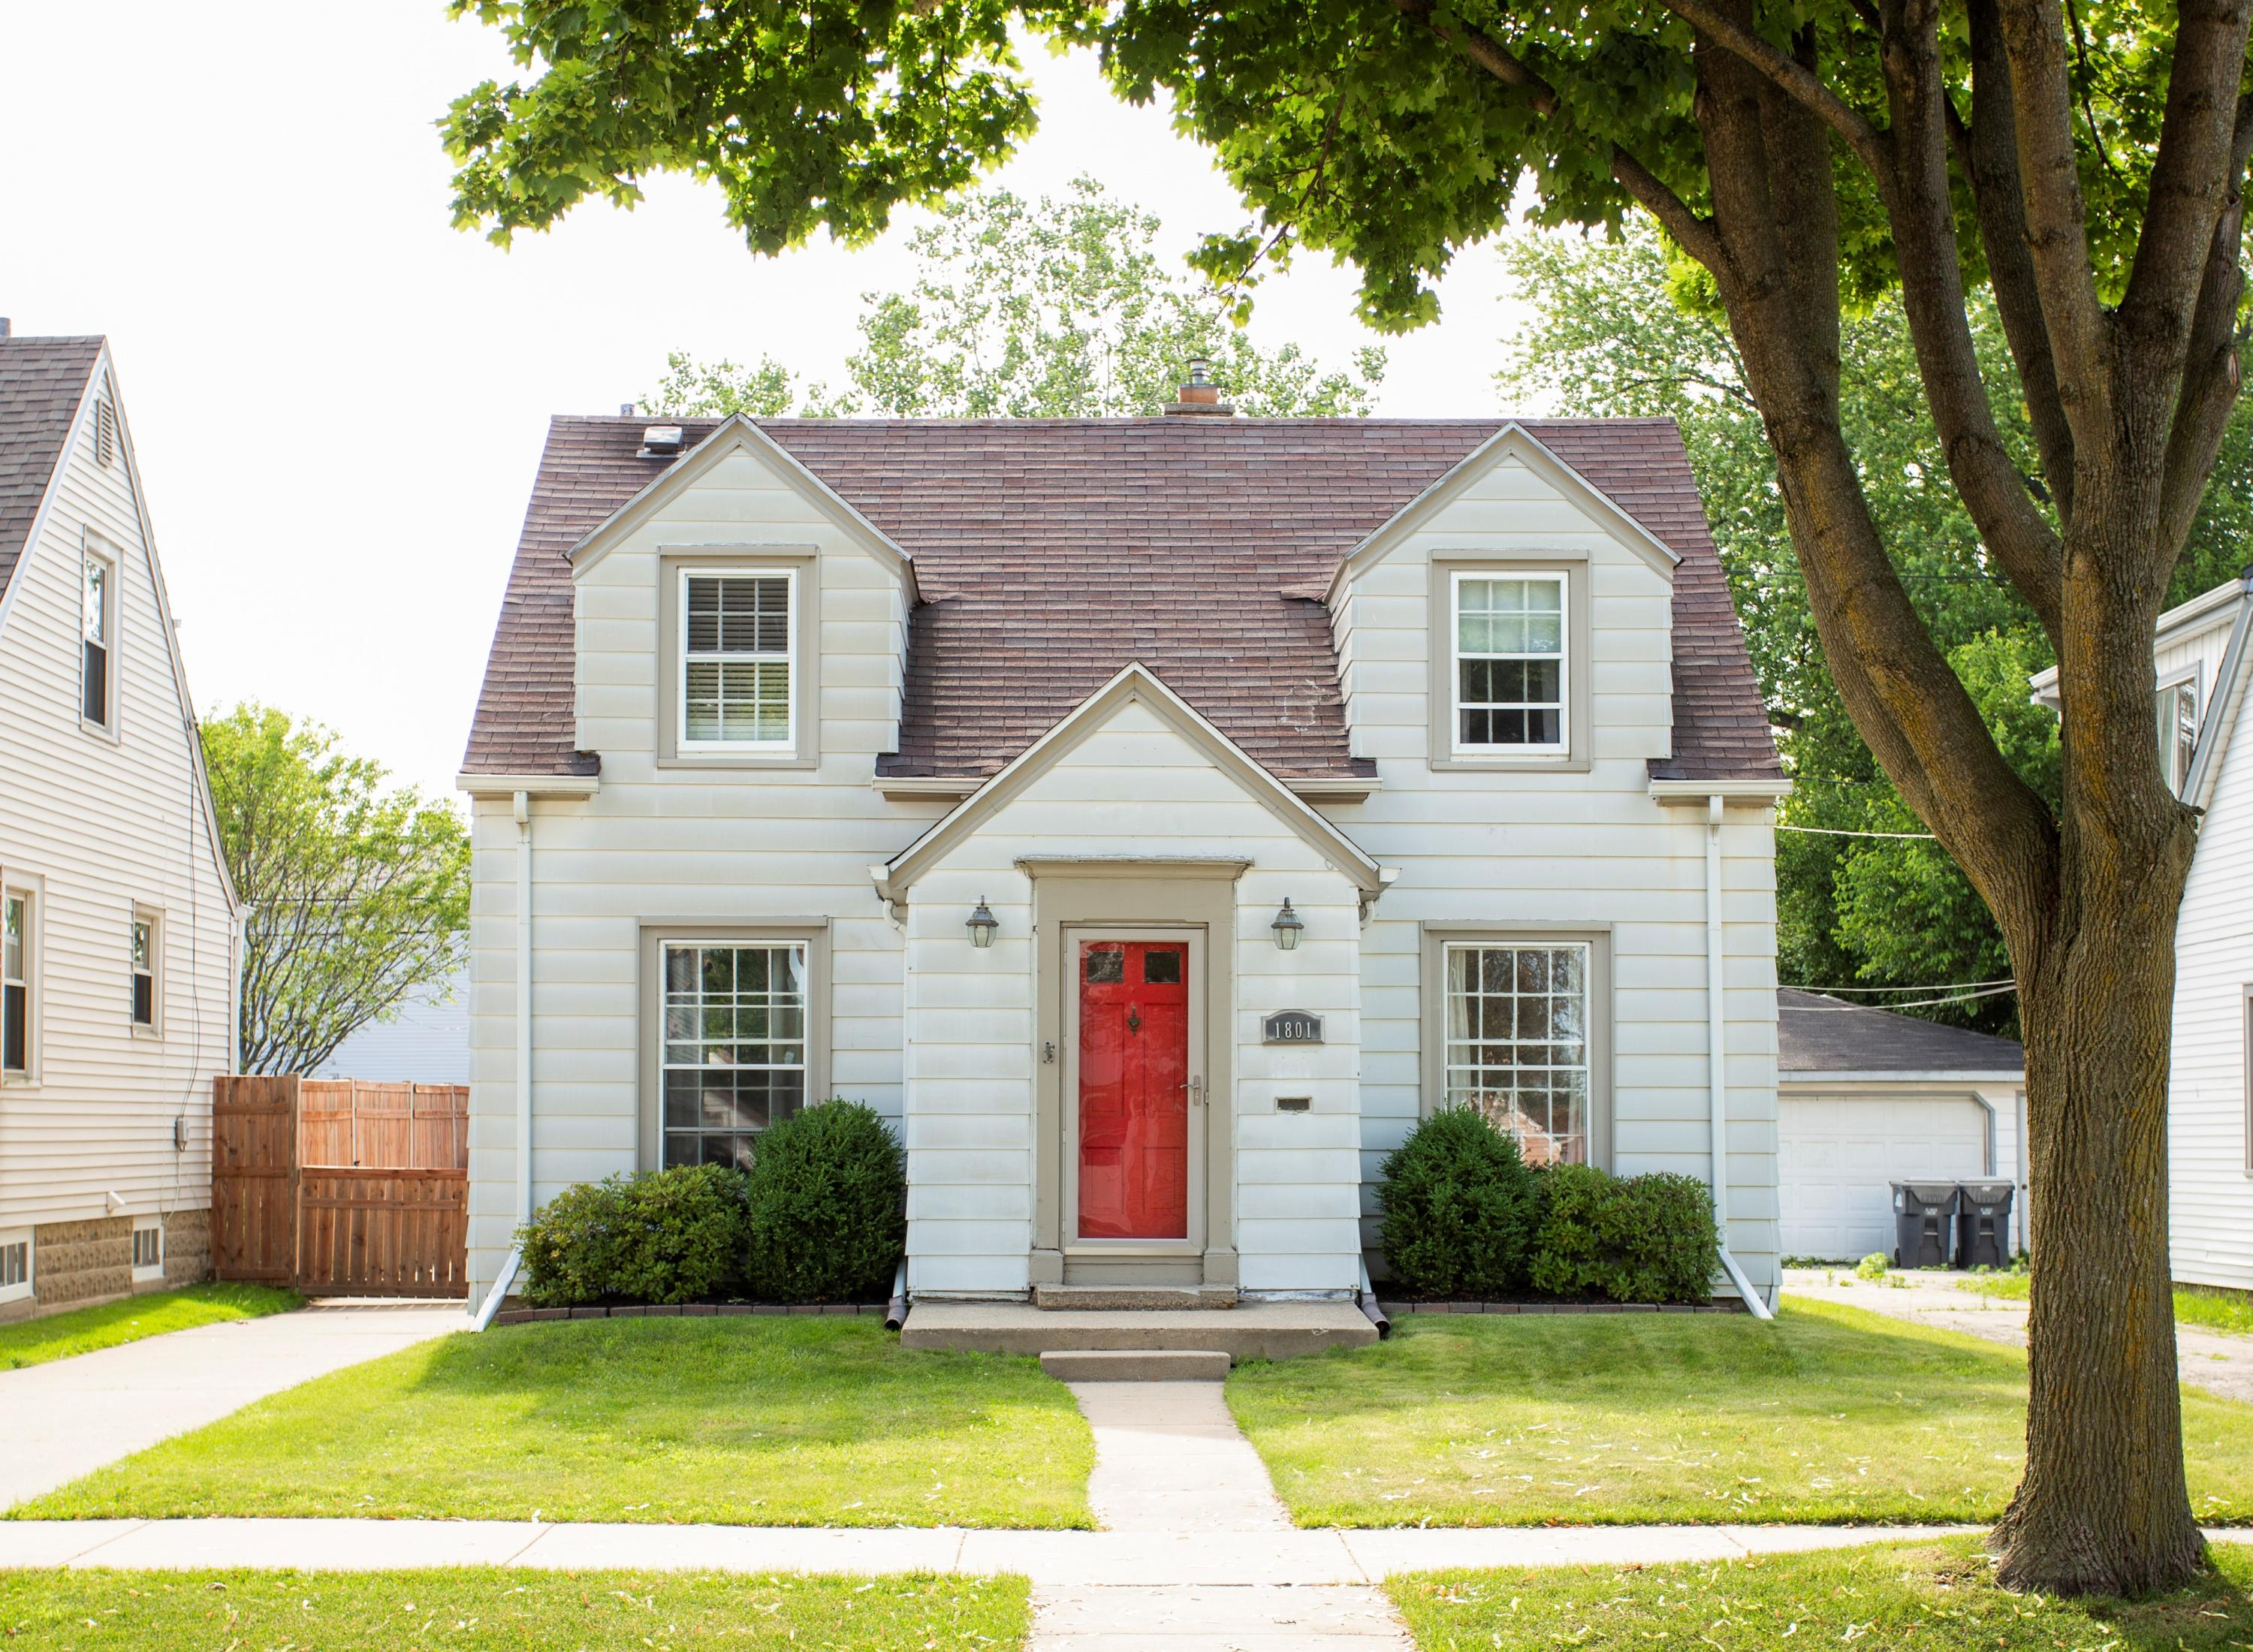 1801 55th St, West Milwaukee, Wisconsin 53214, 3 Bedrooms Bedrooms, ,1 BathroomBathrooms,Single-Family,For Sale,55th St,1696734